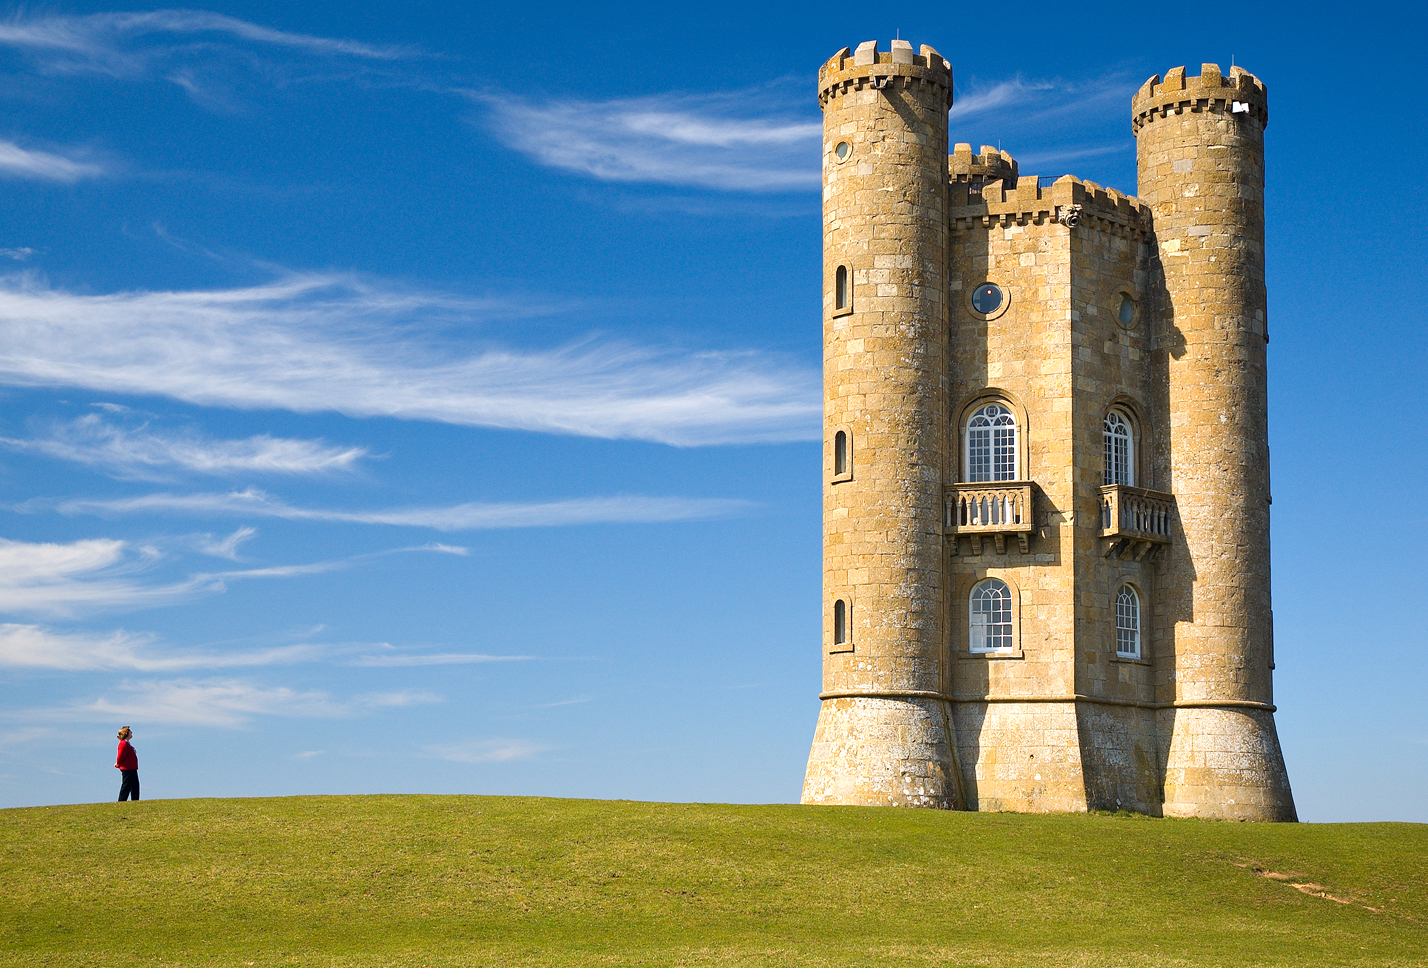 The original image, before rescaling. It's the Broadway Tower, Cotswolds, UK.